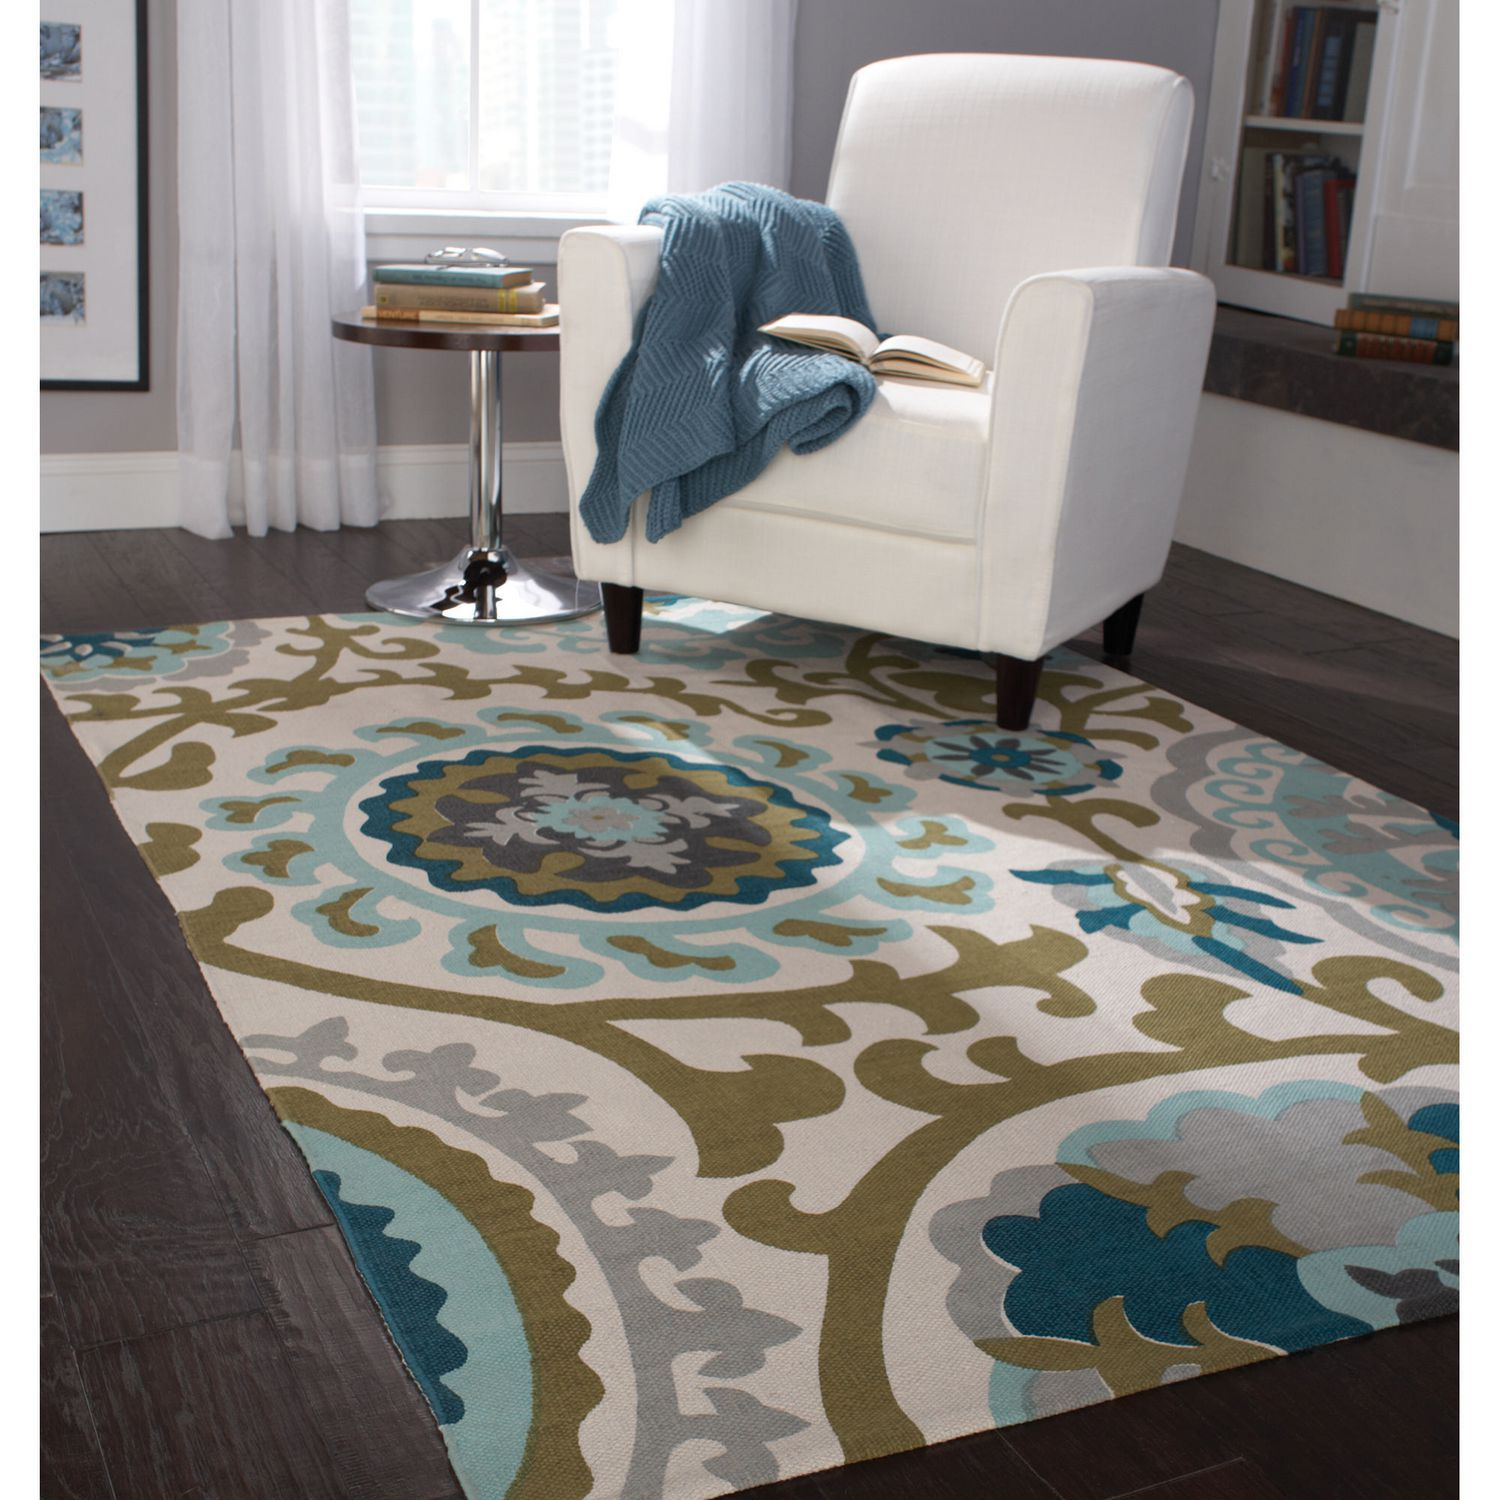 Home Trends Area Rug 4 Ft 11 In X 6 9 Blue Green Where To